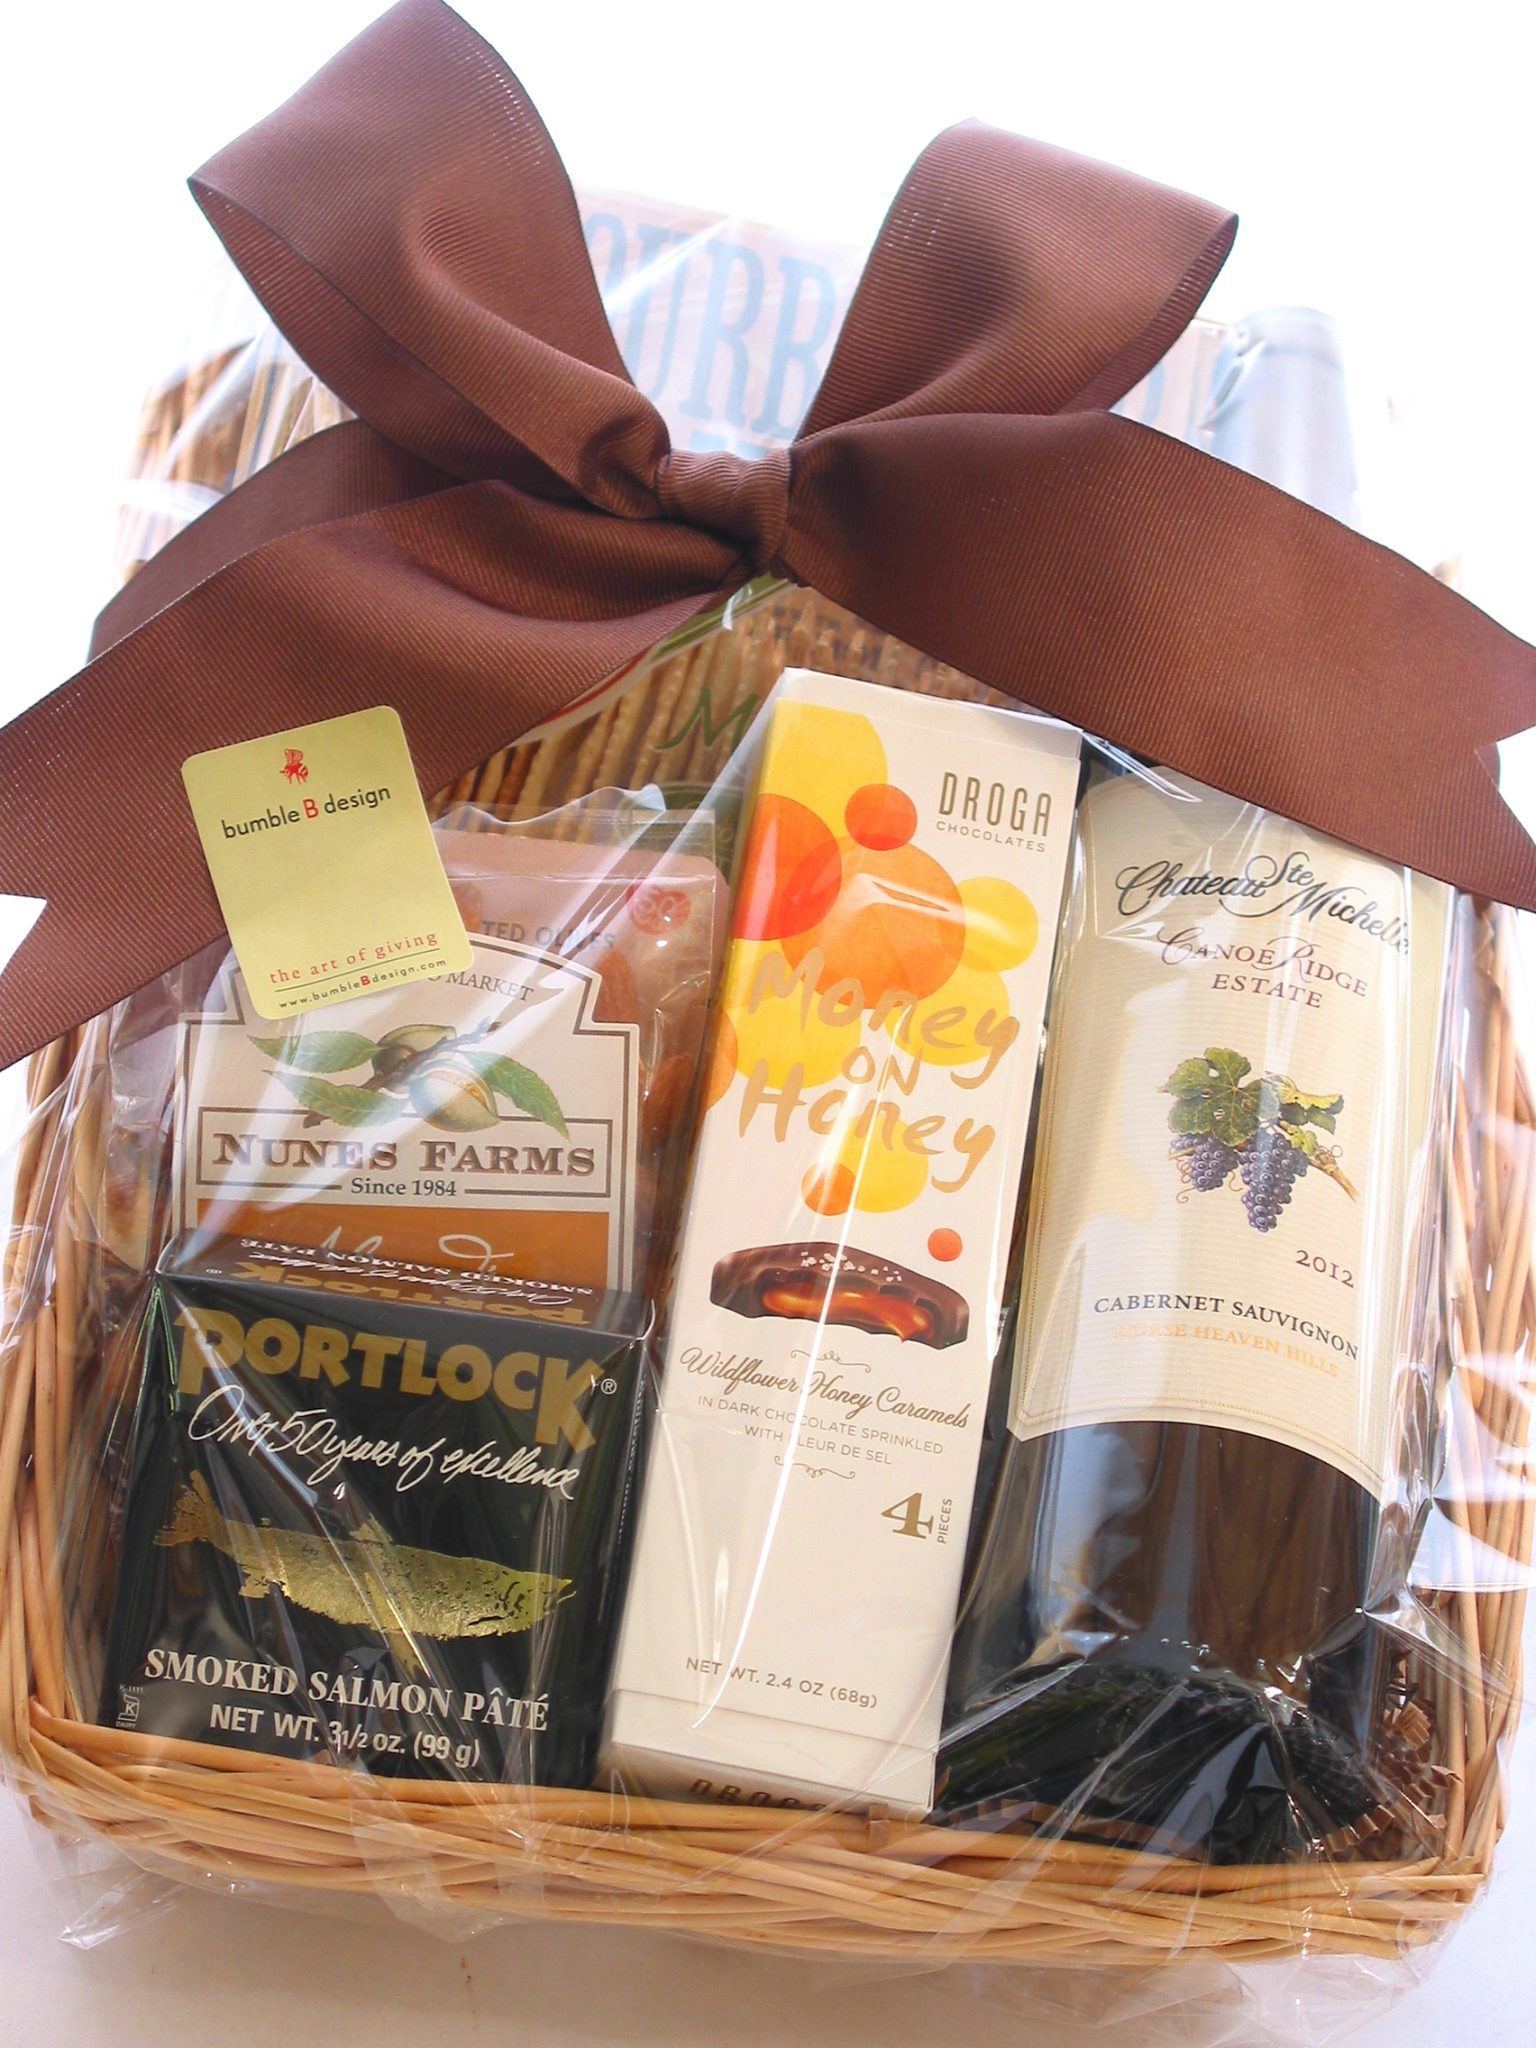 Wine Gift Basket From Bumble B Design Seattle Wabumble B